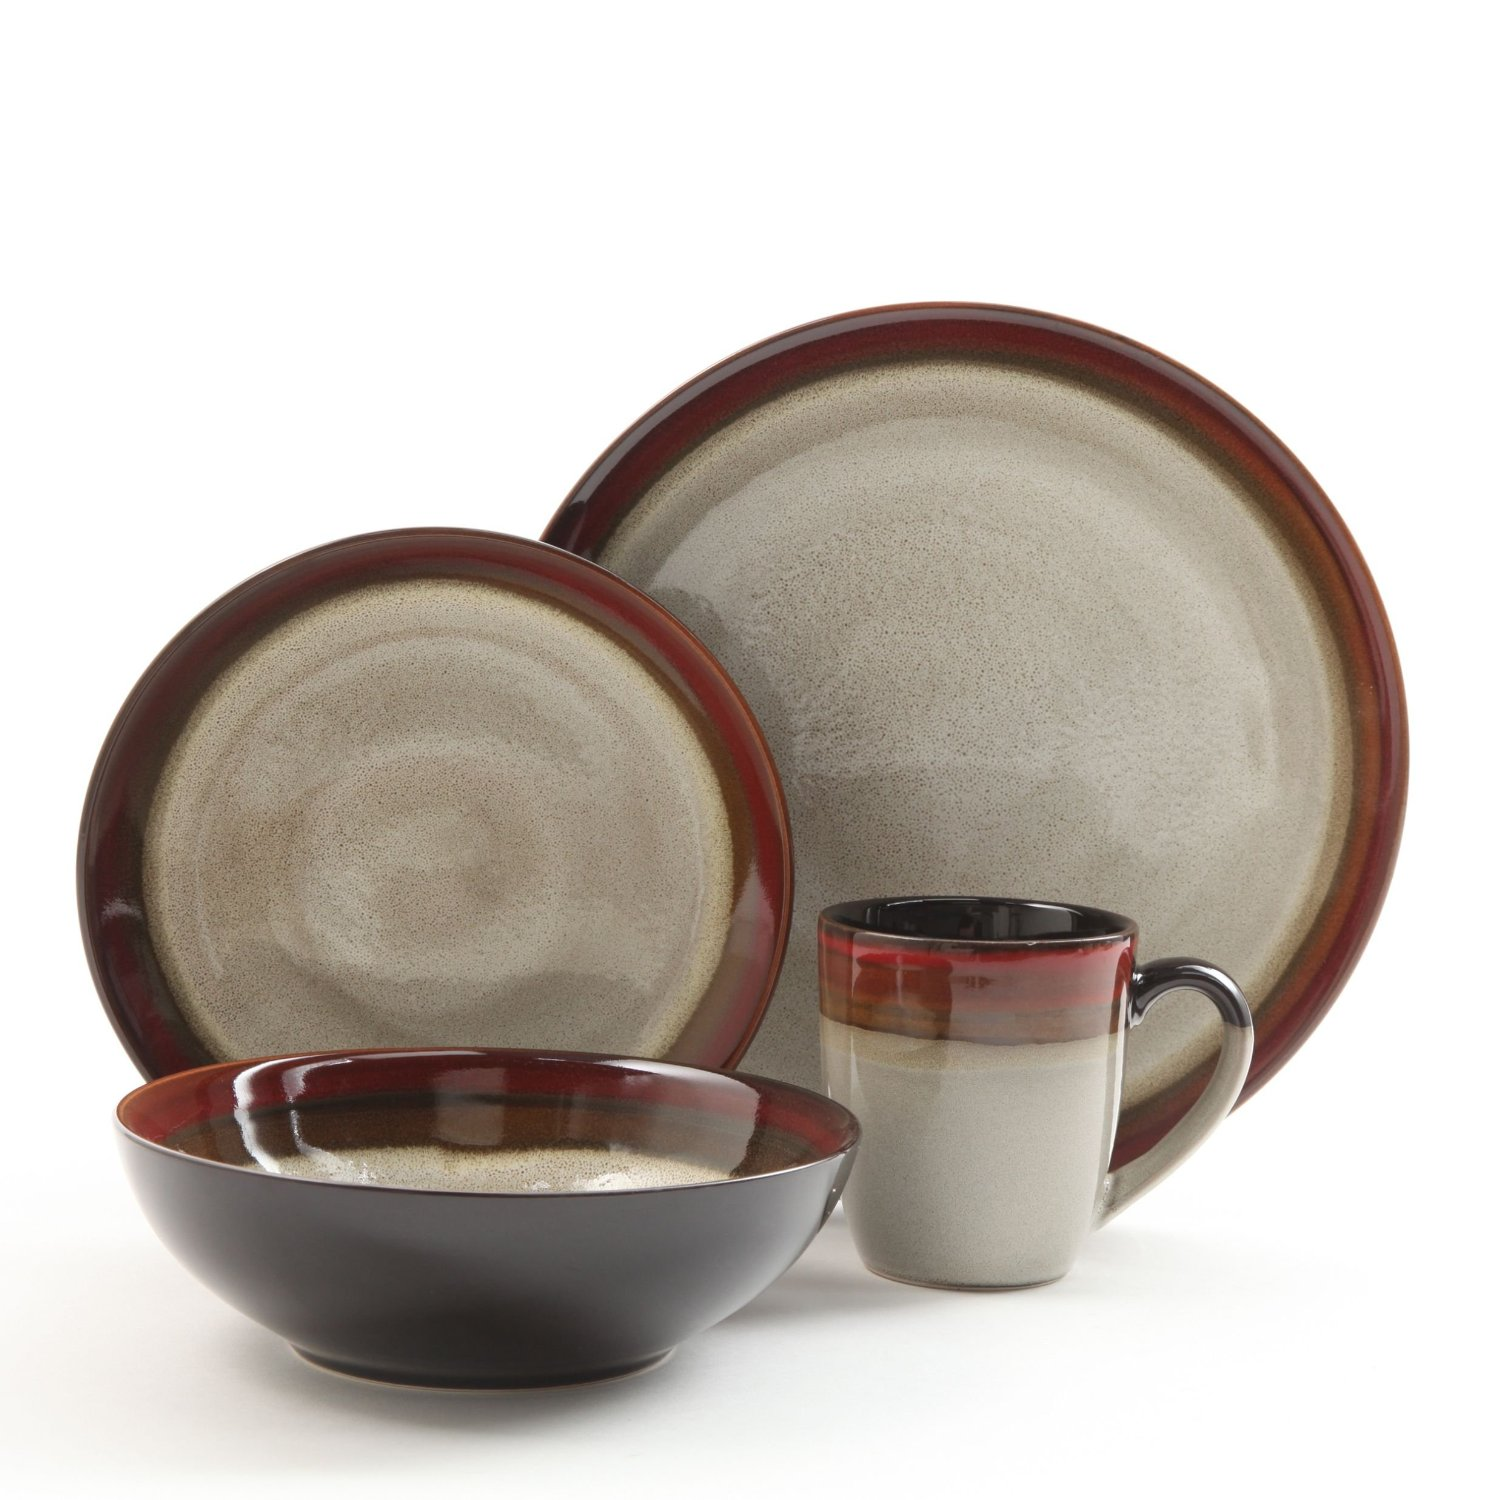 Porcelain Dishes | Stoneware Dinnerware Sets | Bed Bath & Beyond Dishes